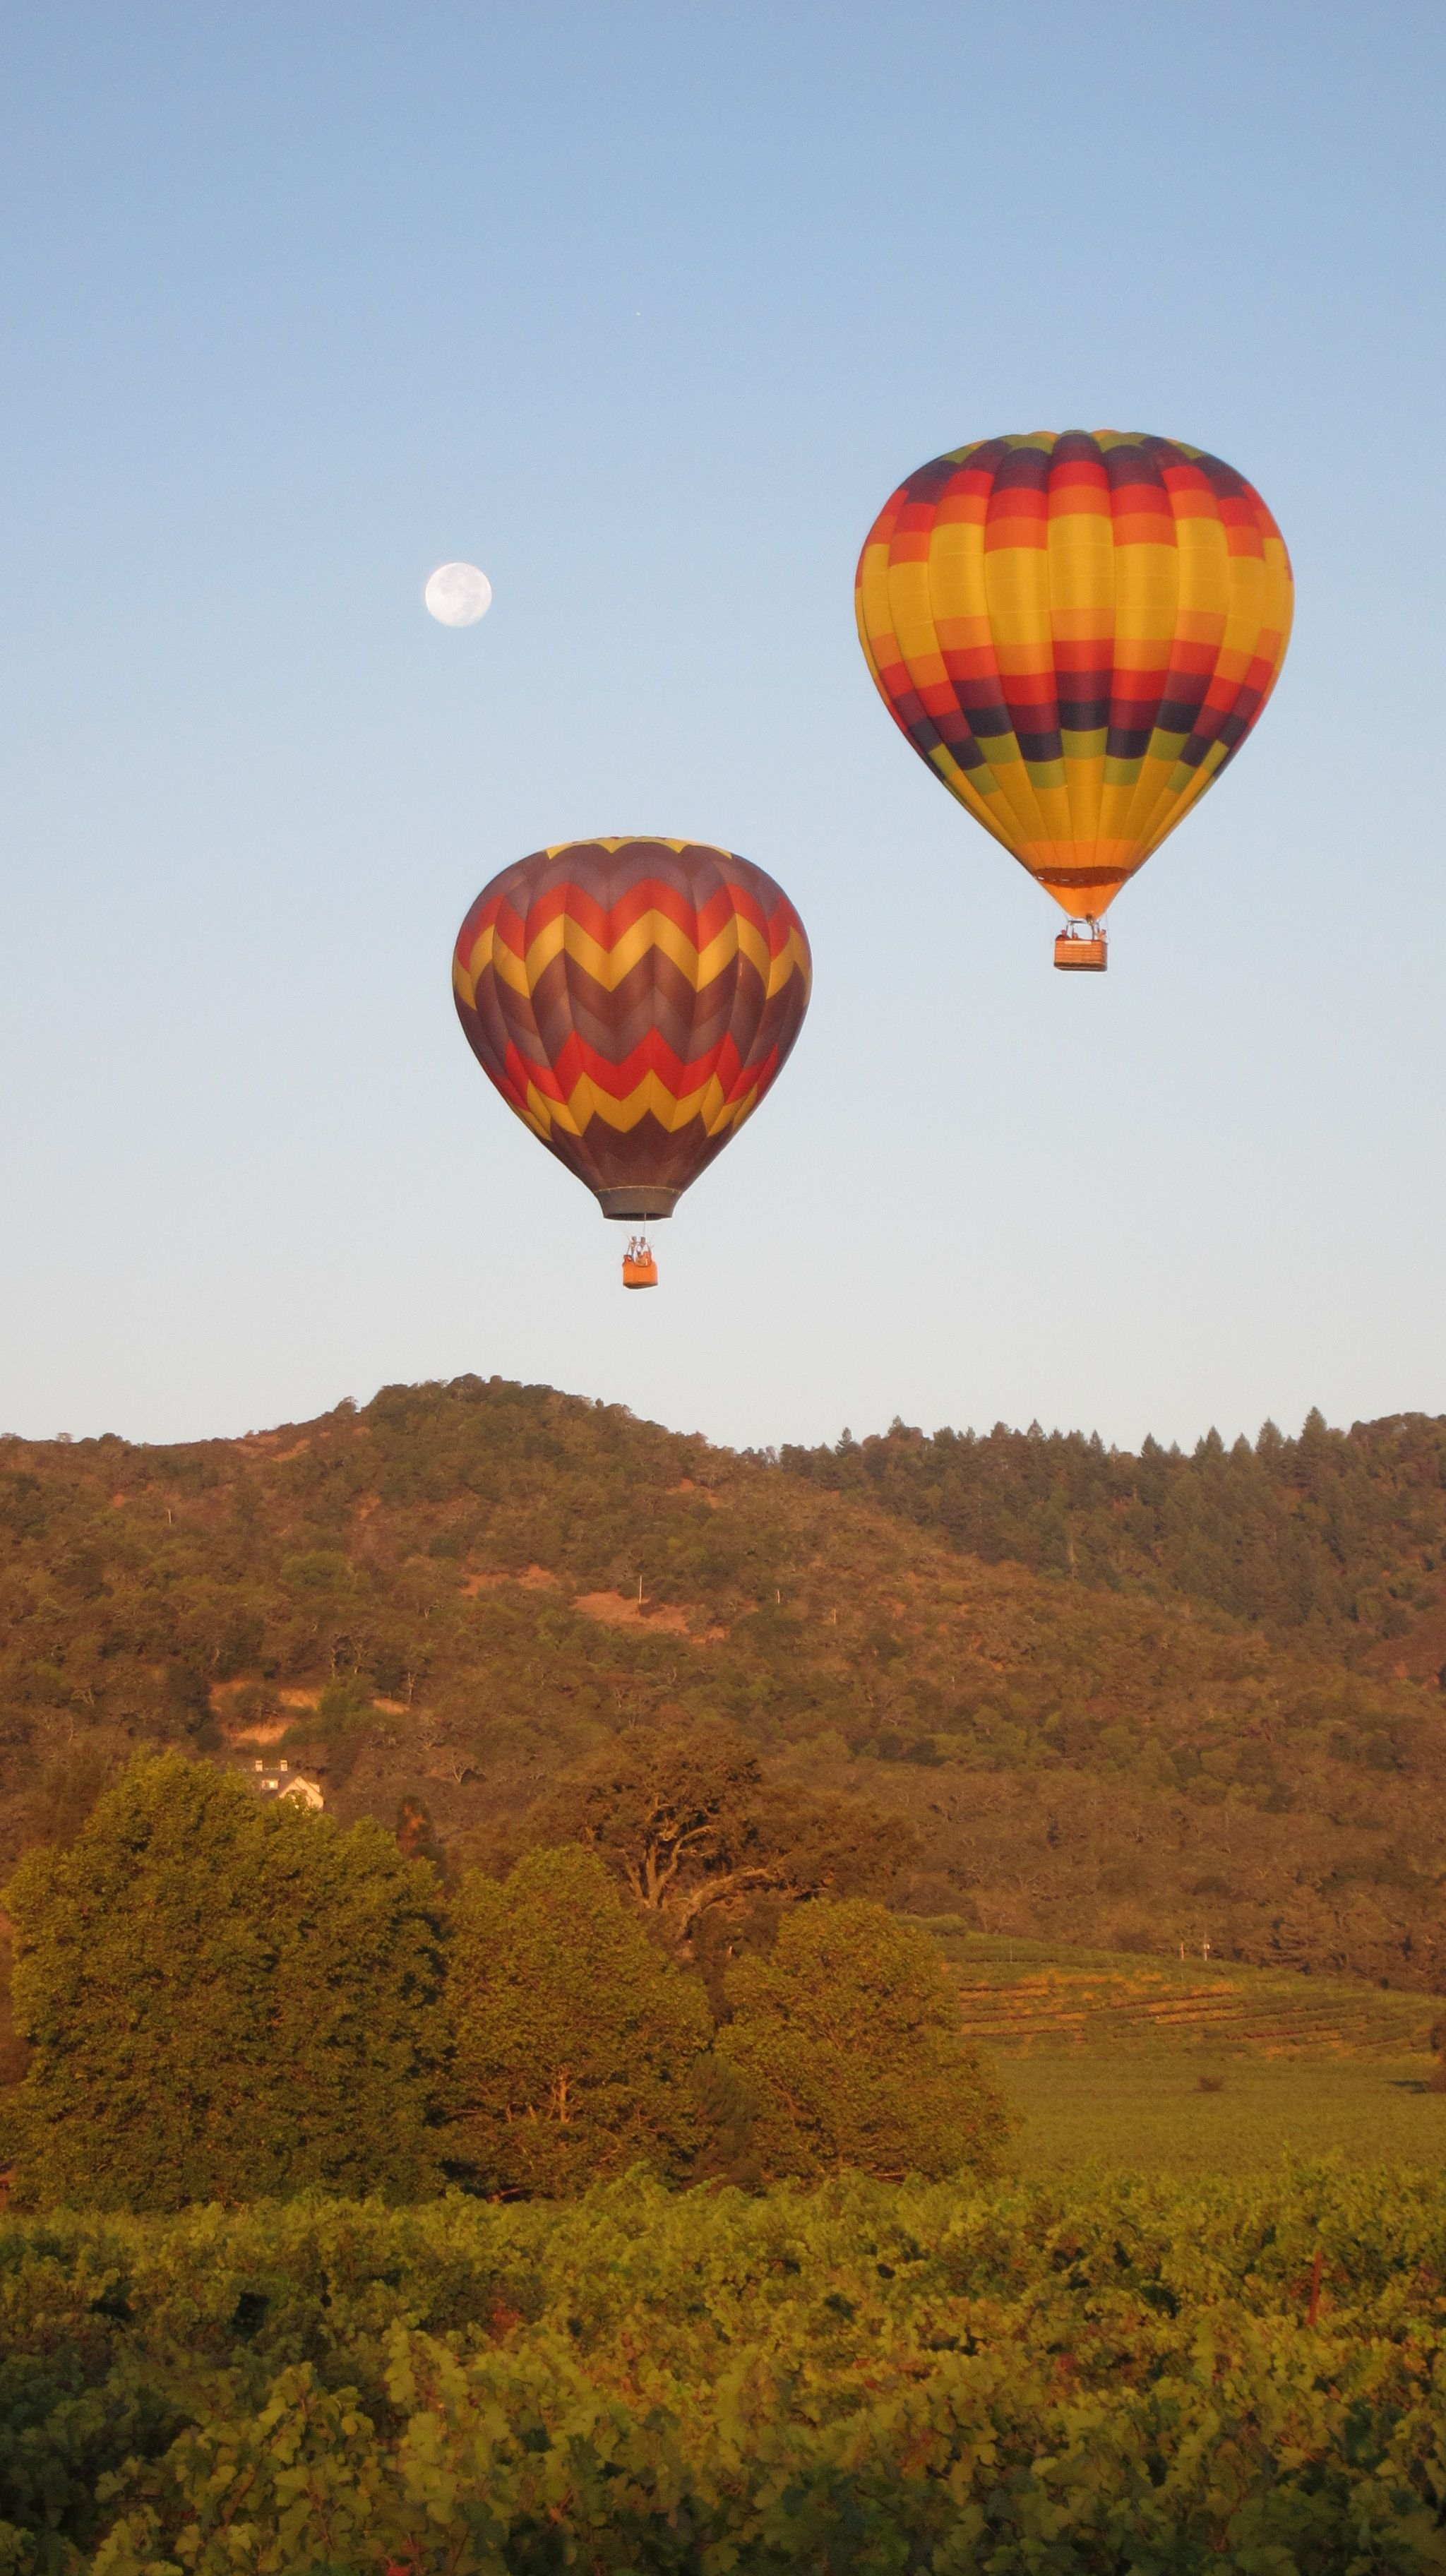 Hot air balloon ride over Napa/Sonoma Valley… AMAZING